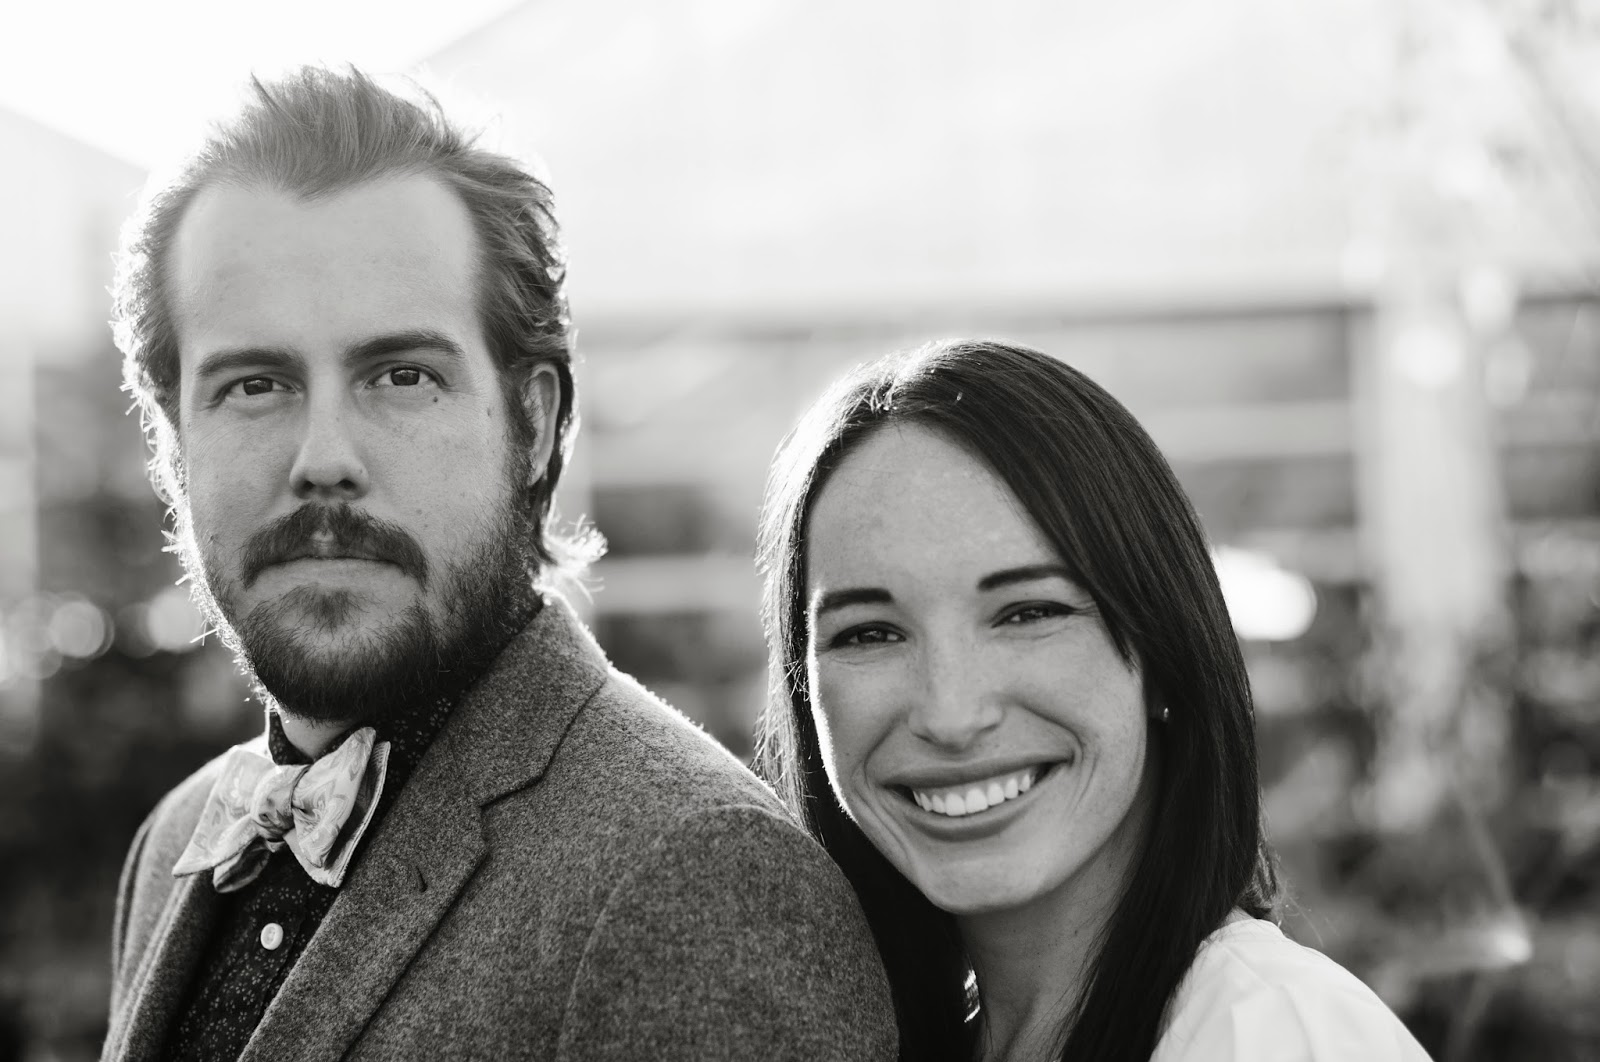 utah couples photographer, j&h photography